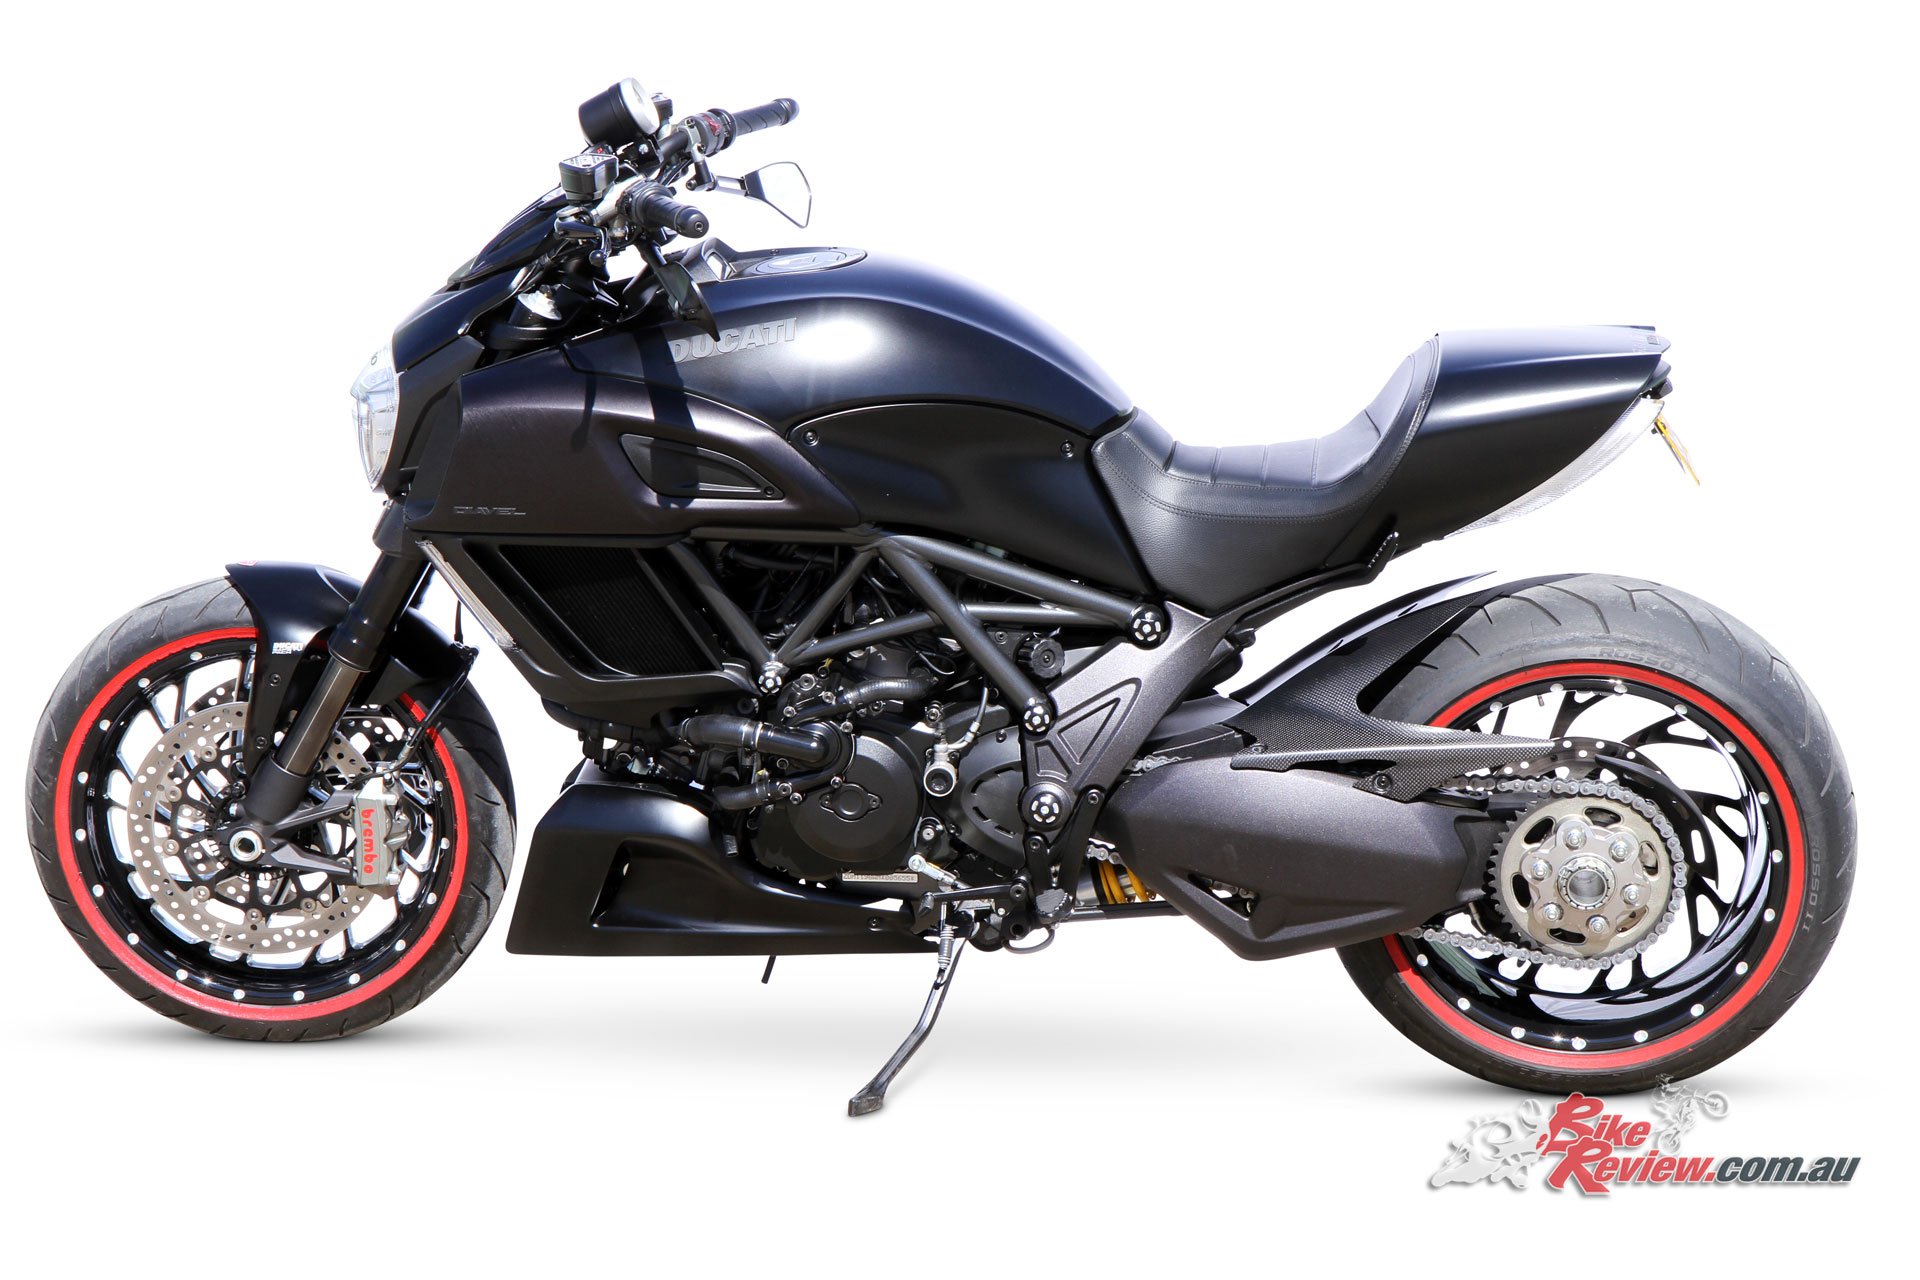 Custom Turbo D Super Cruiser Ducati Diavel Bike Review